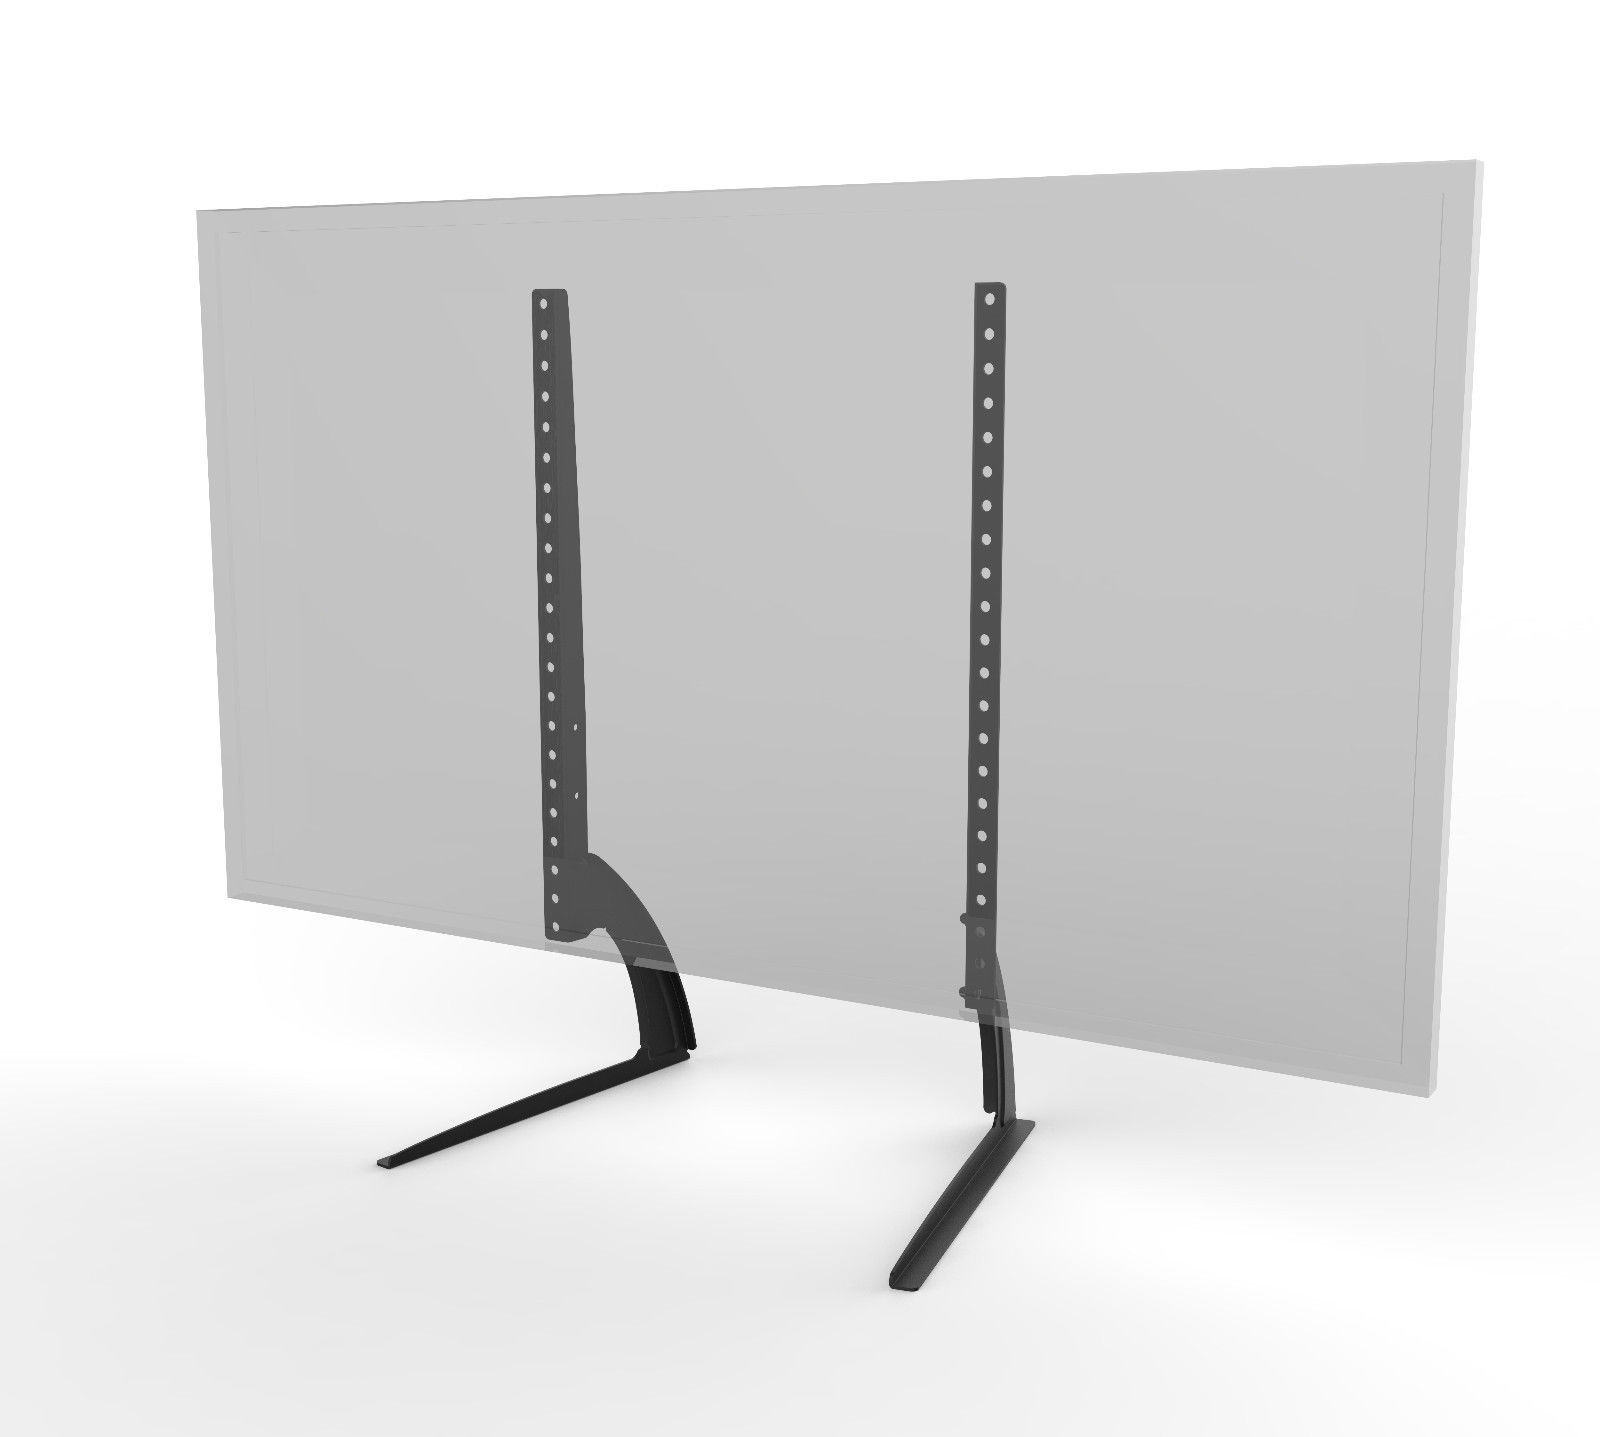 Universal Table Top TV Stand Legs for LG 42LG70-UA Height Adjustable